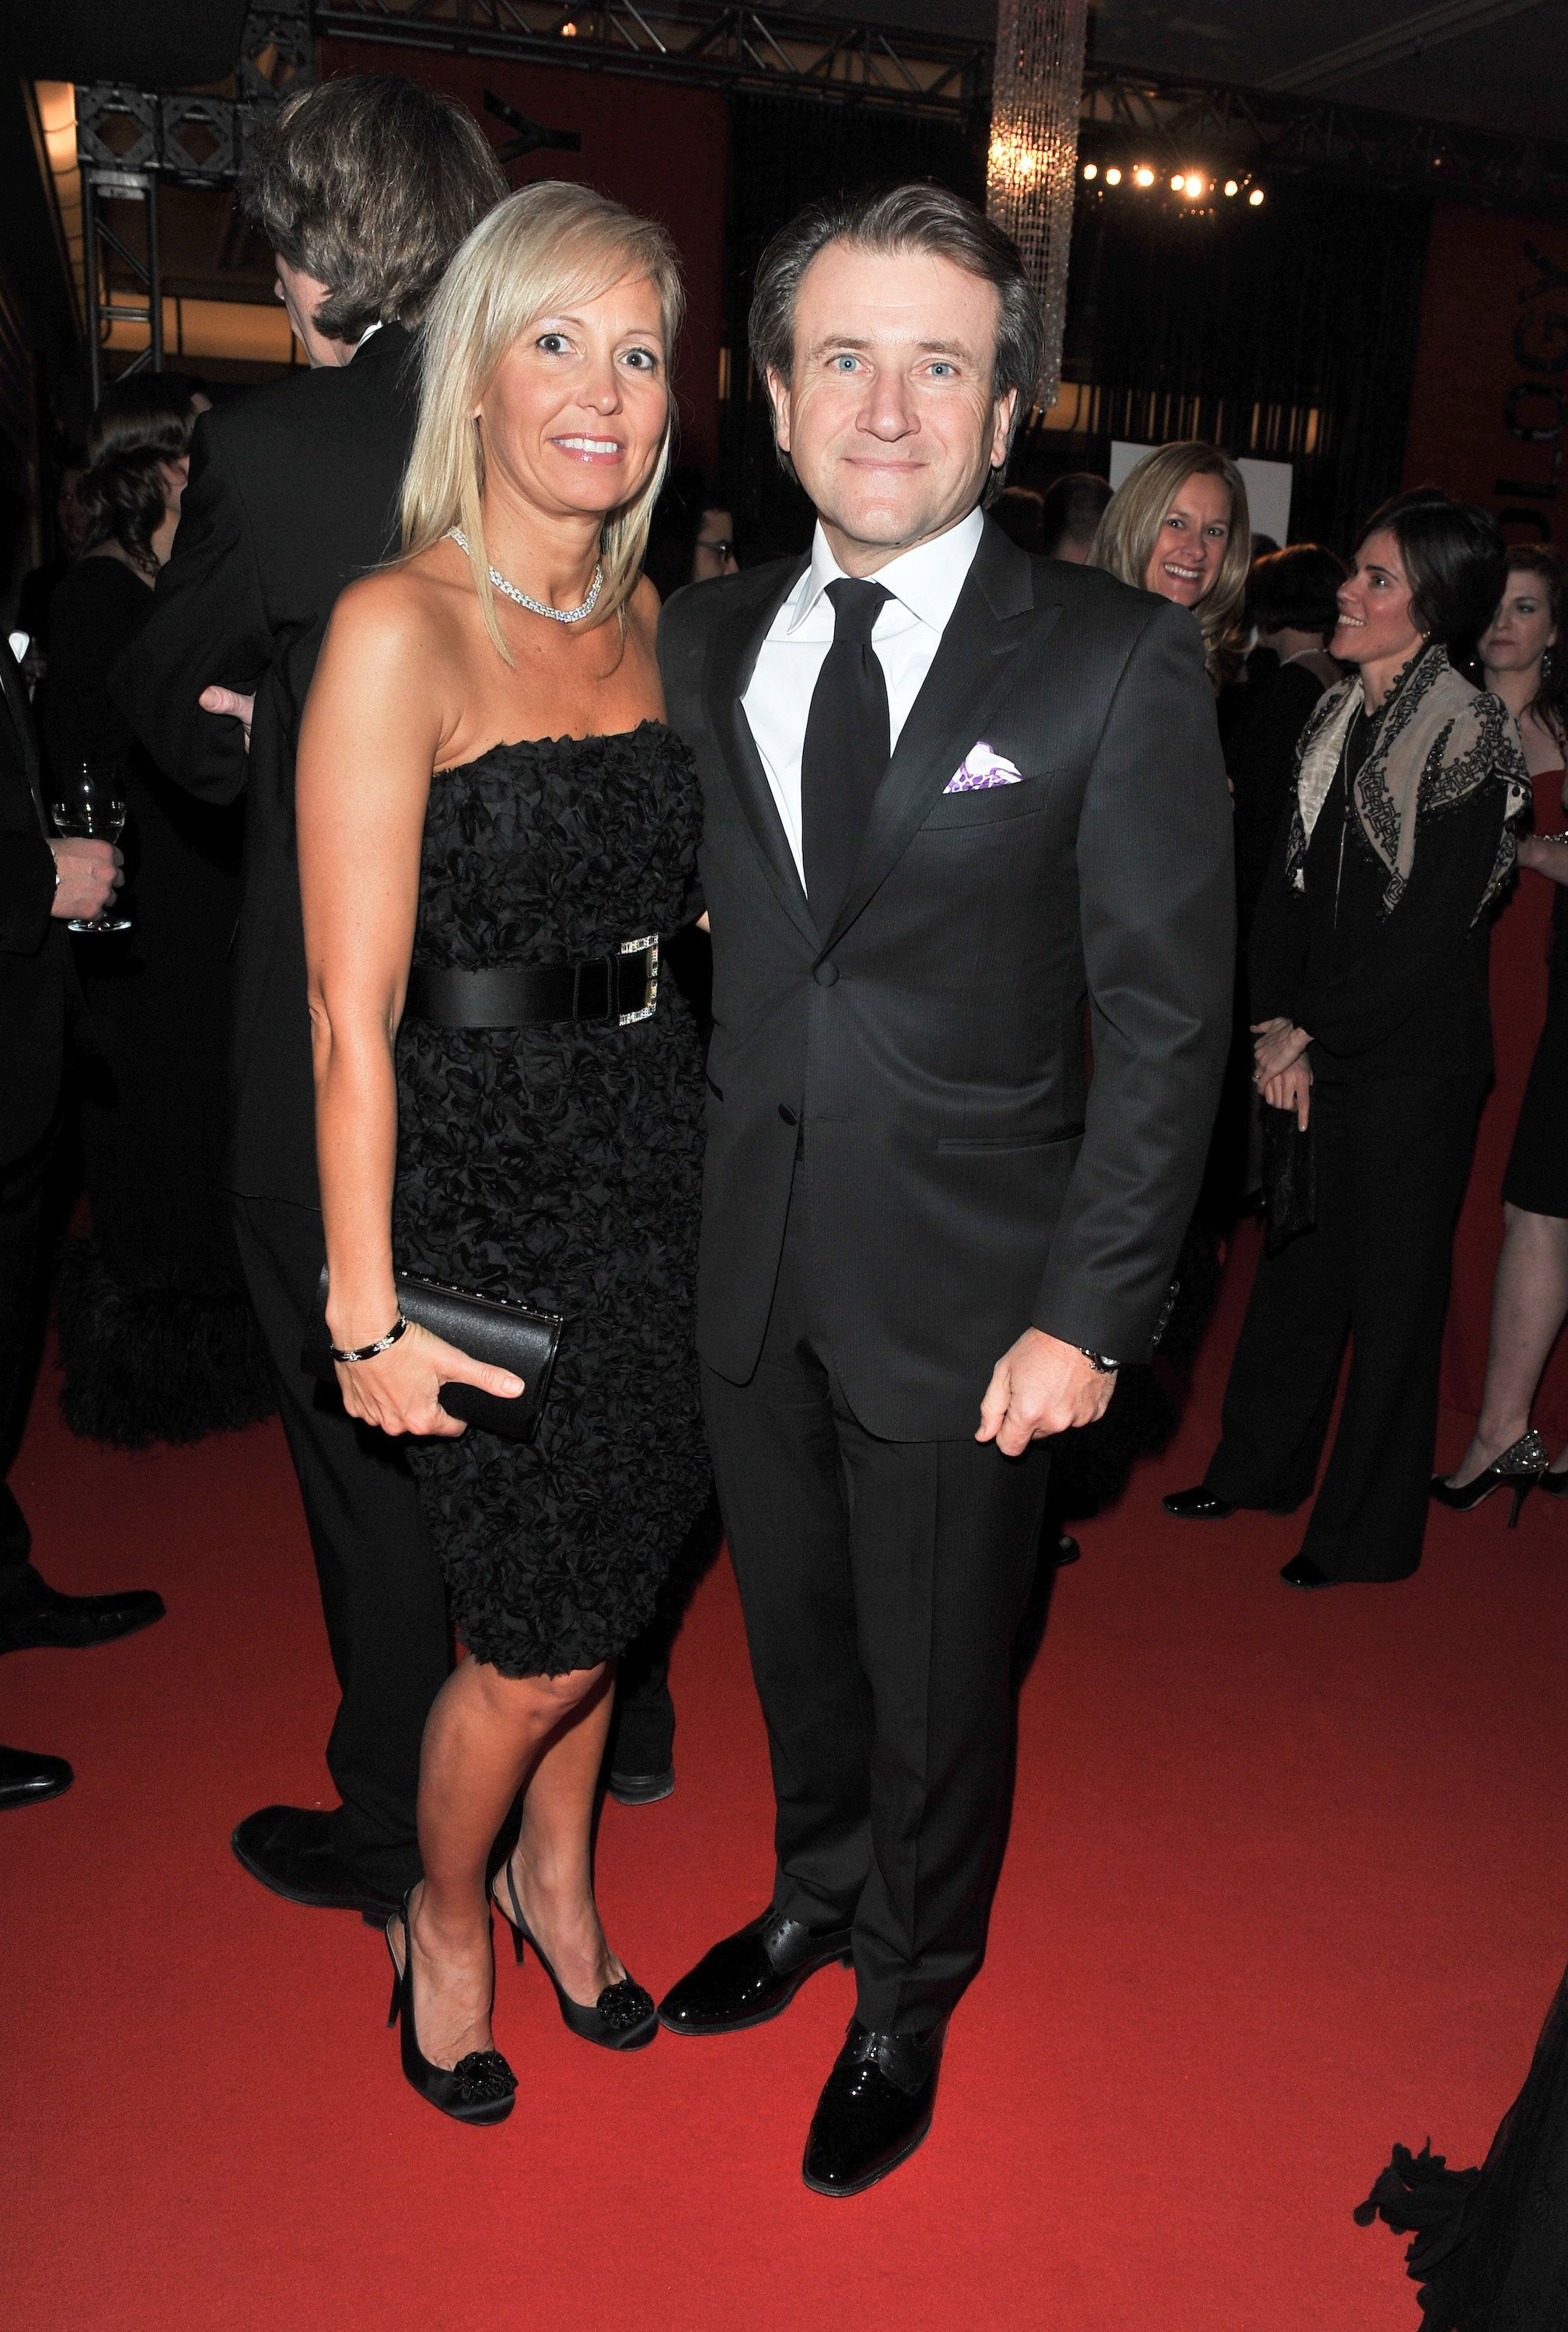 Diane Plese and Robert Herjavec at the Canadian Film Centre Gala and Auction at The Carlu on February 9, 2011, in Toronto, Canada | Photo: George Pimentel/WireImage/Getty Images